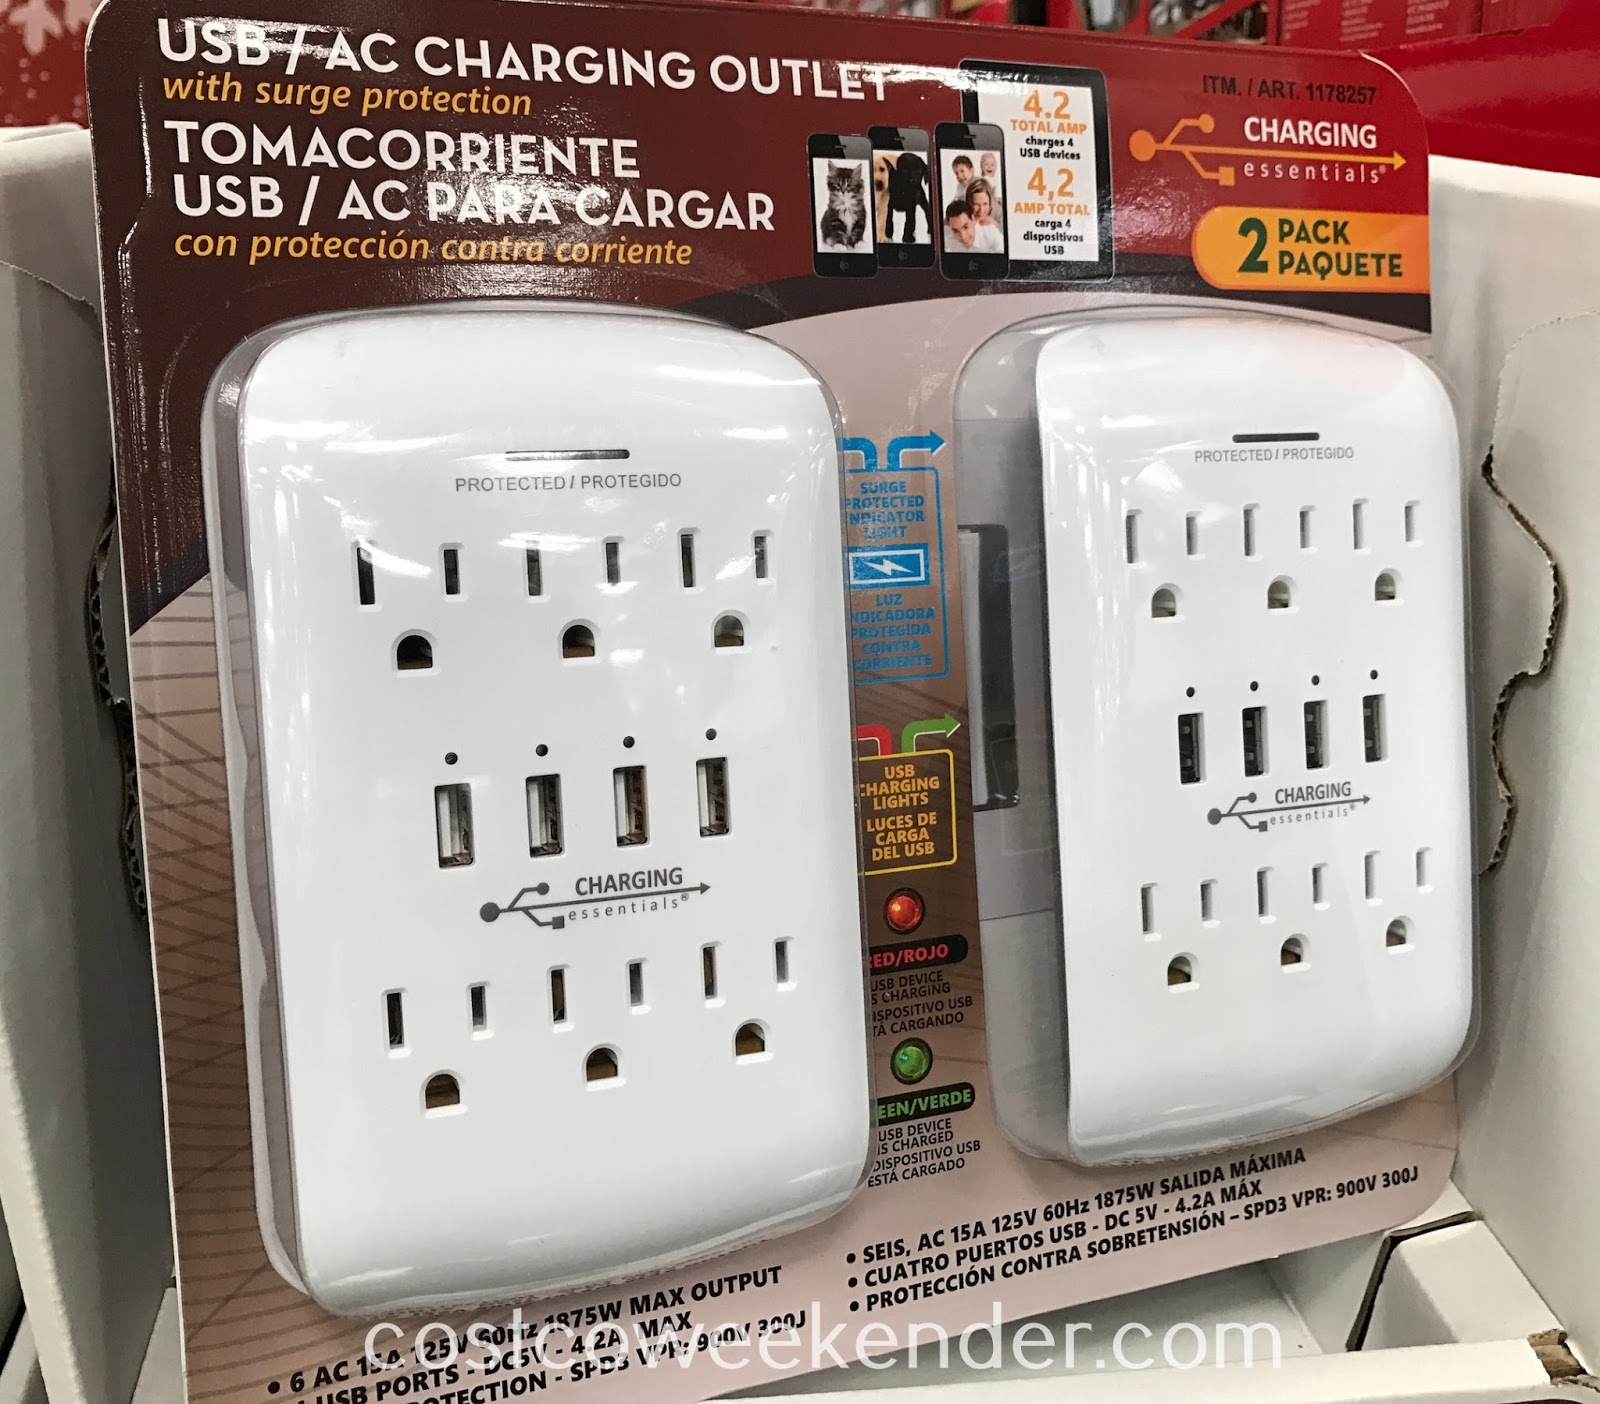 Easily charge your devices with the Charging Essentials USB AC Charging Outlet